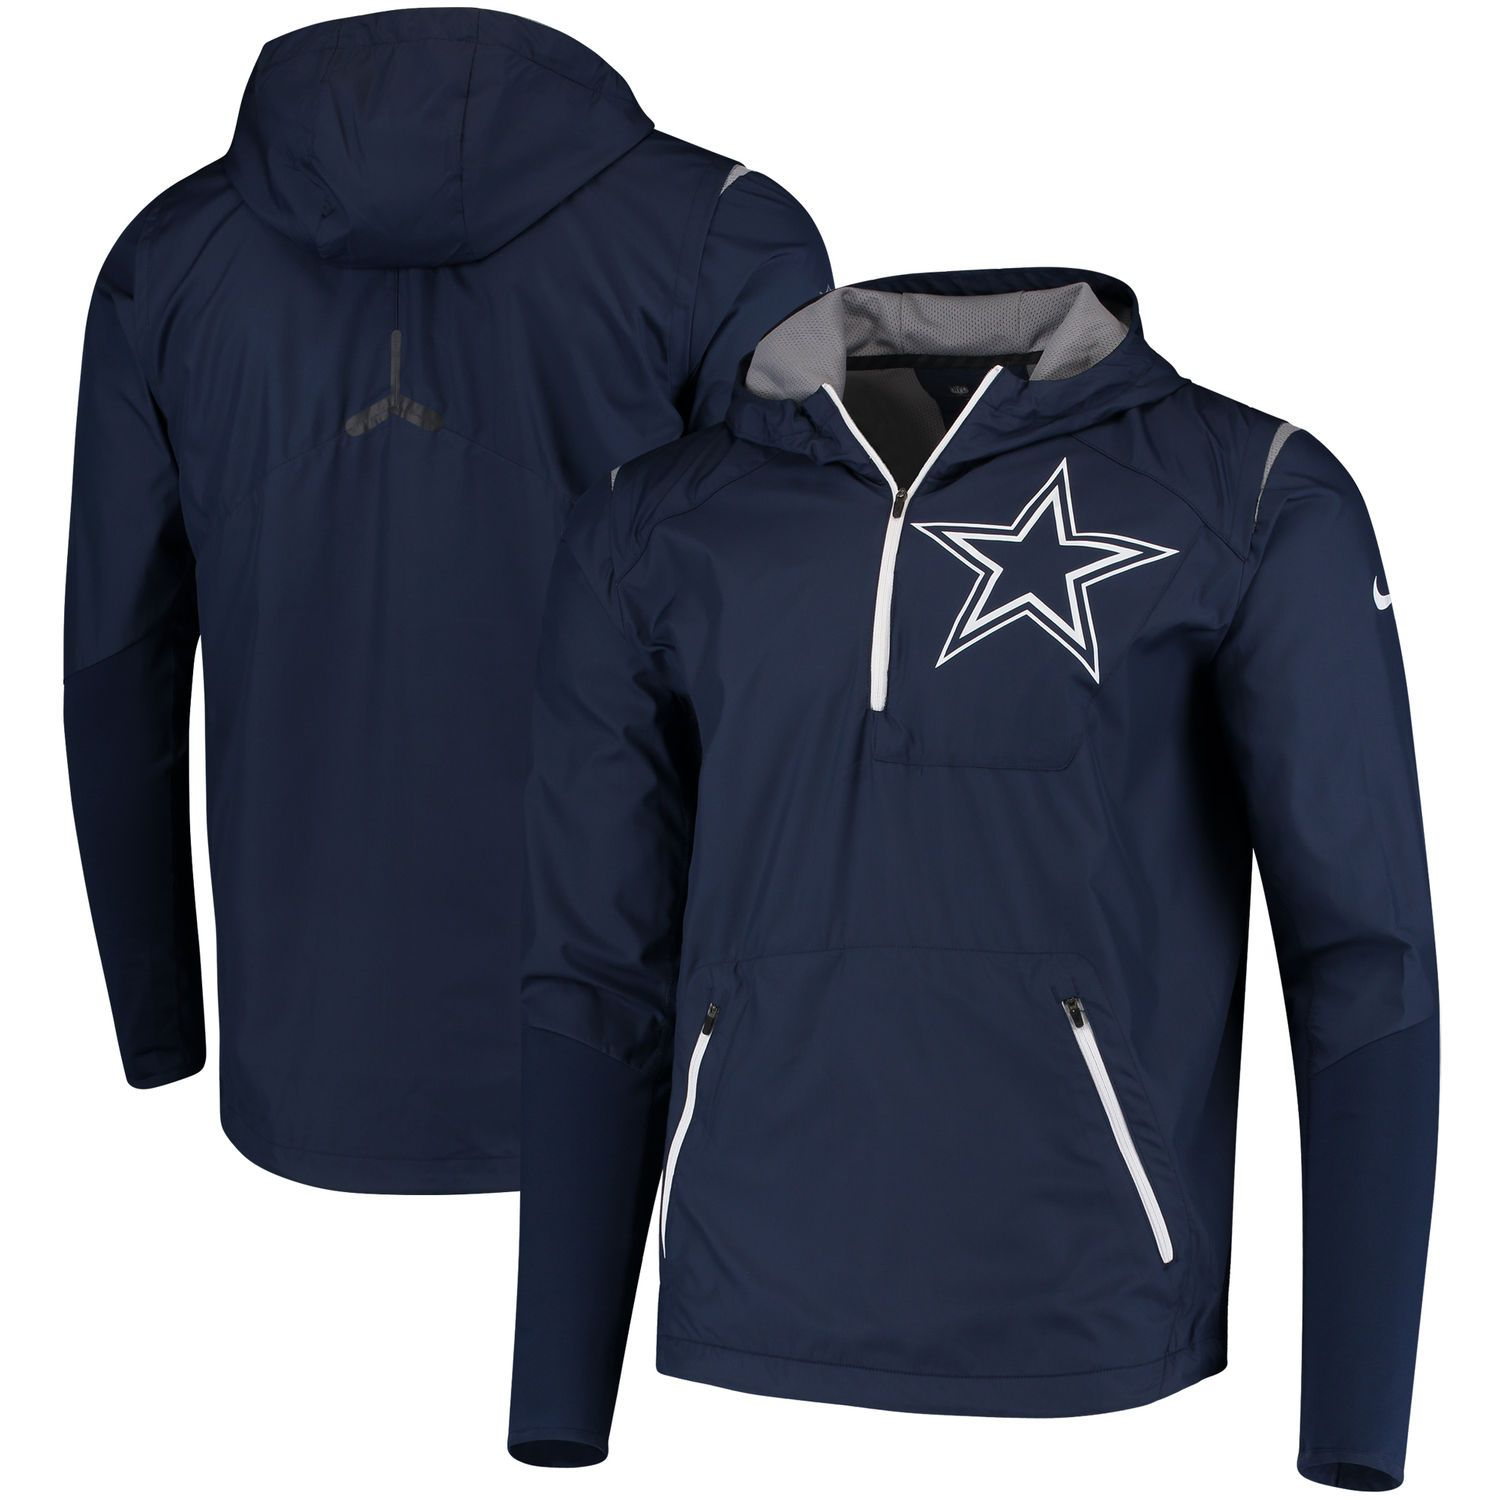 san francisco d0b44 16e1a Men's Nike Navy Dallas Cowboys Sideline Fly Rush Half-Zip ...